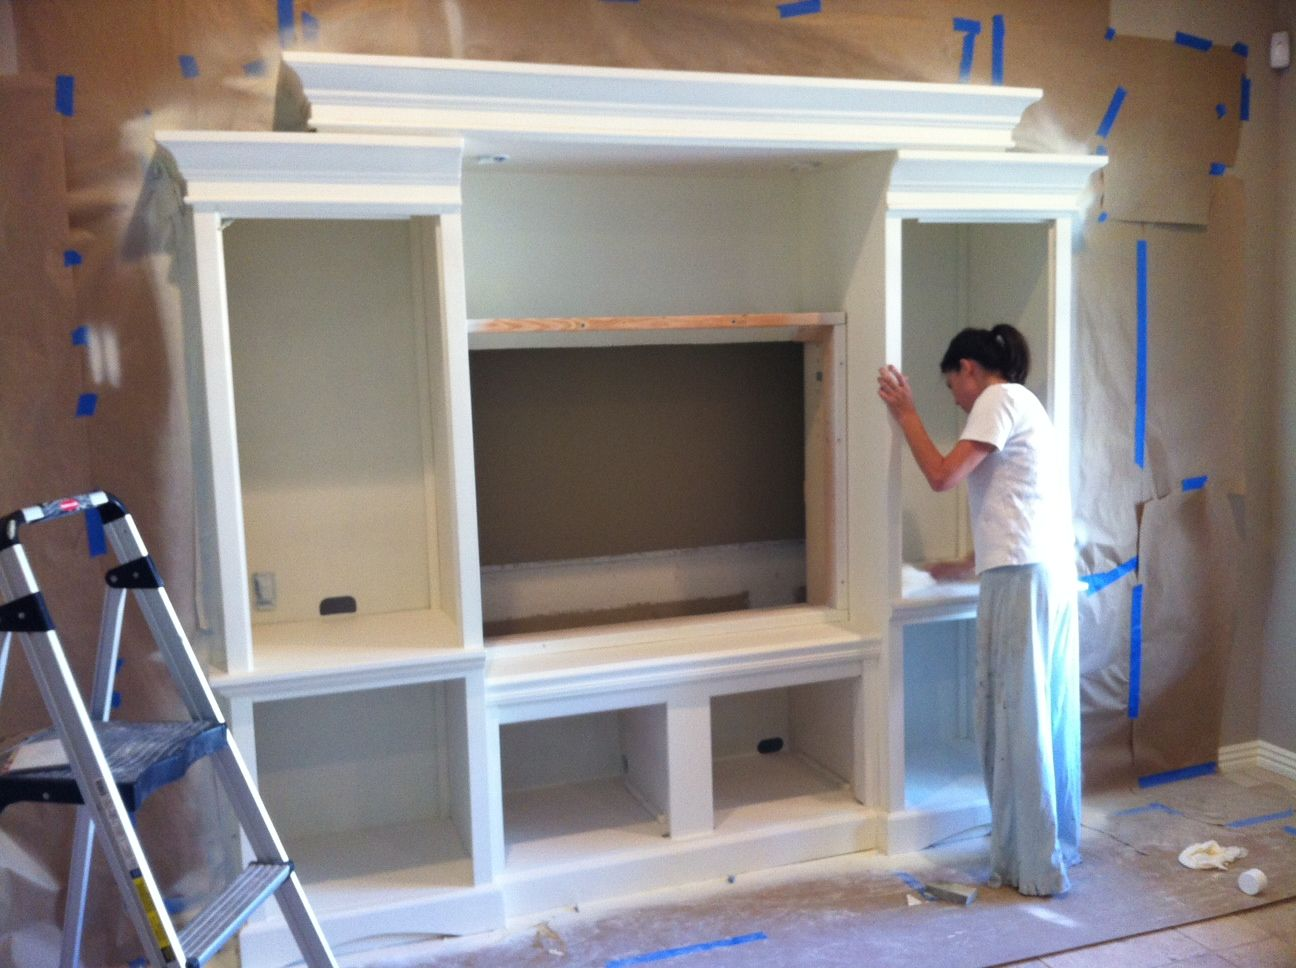 Built In Entertainment Center Design Ideas custom built entertainment center Decor Ideas In This Post We Show How We Used A Second Hand Entertainment Center And Built It